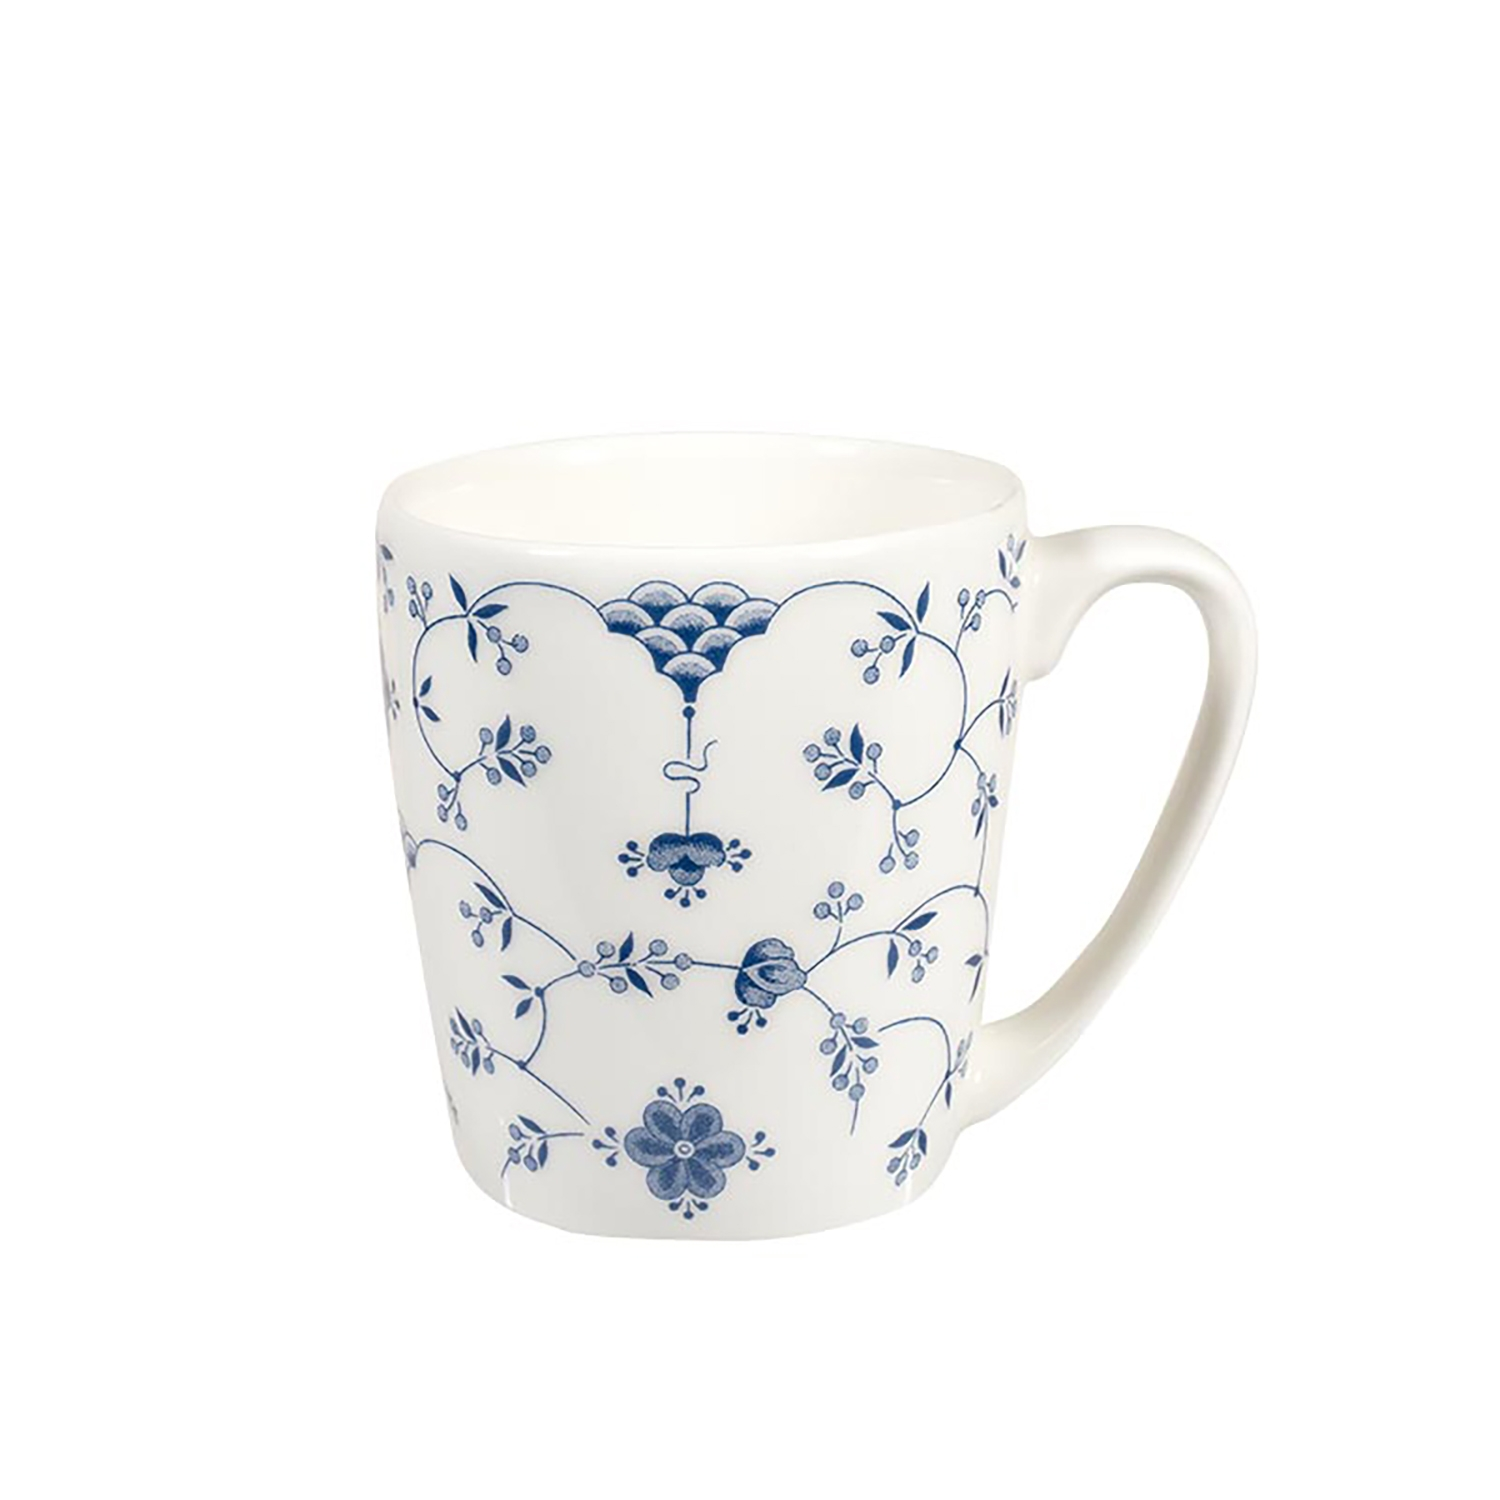 Image of Churchill China, Finlandia Mug, 300ml, Blue